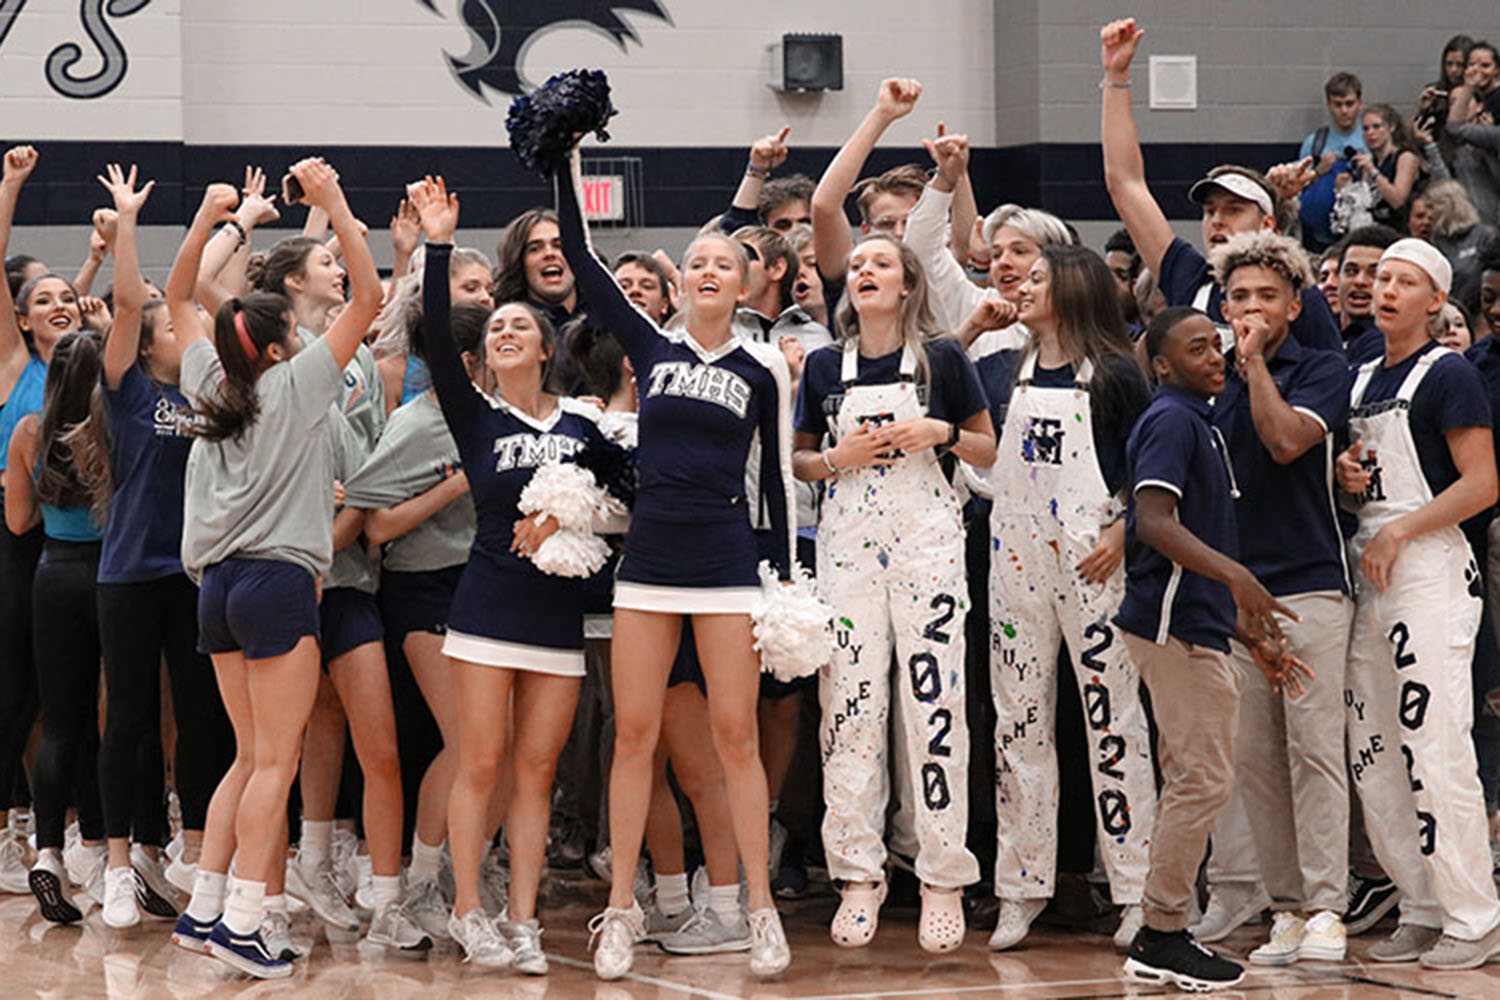 """The Navy Empire cheers for the senior class during the pep rally on Friday, November 15th. """"We loved being loud and obnoxious,"""" senior Brooke Forsyth said. The Navy Empire, created to increase school spirit during pep rallies and football games, competed with the other grades to be the loudest and most spirited during the pep rally."""